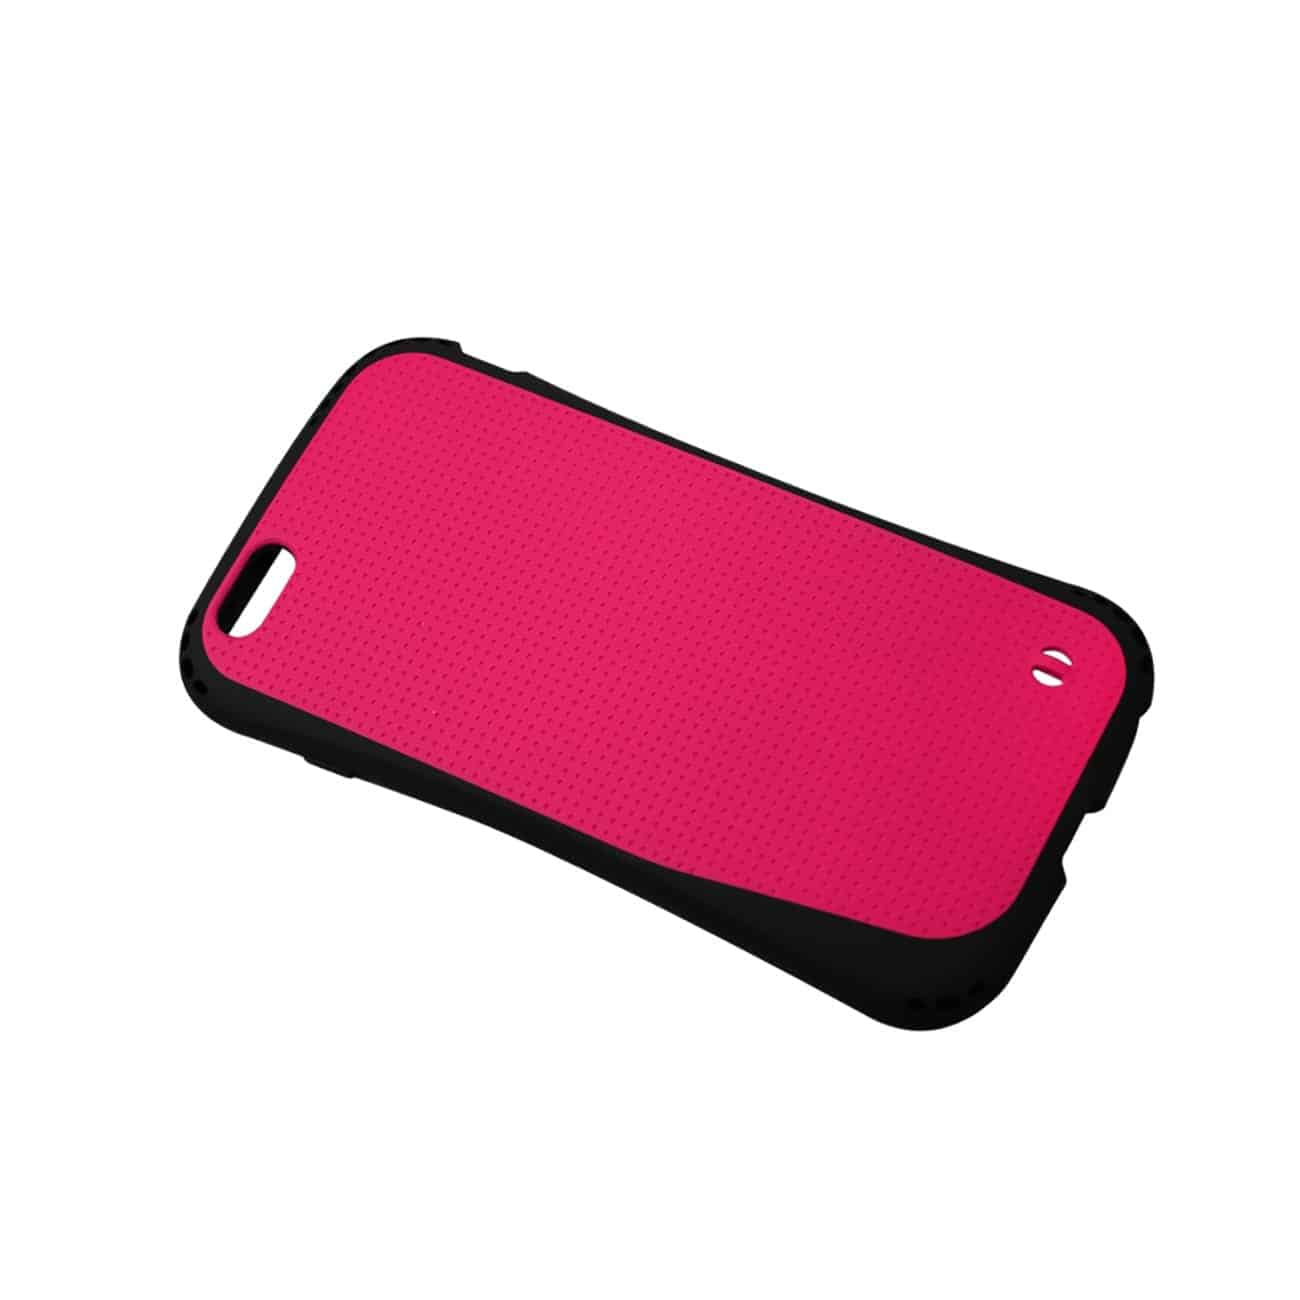 IPHONE 6 PLUS DROPPROOF AIR CUSHION CASE WITH CHAIN HOLE IN HOT PINK